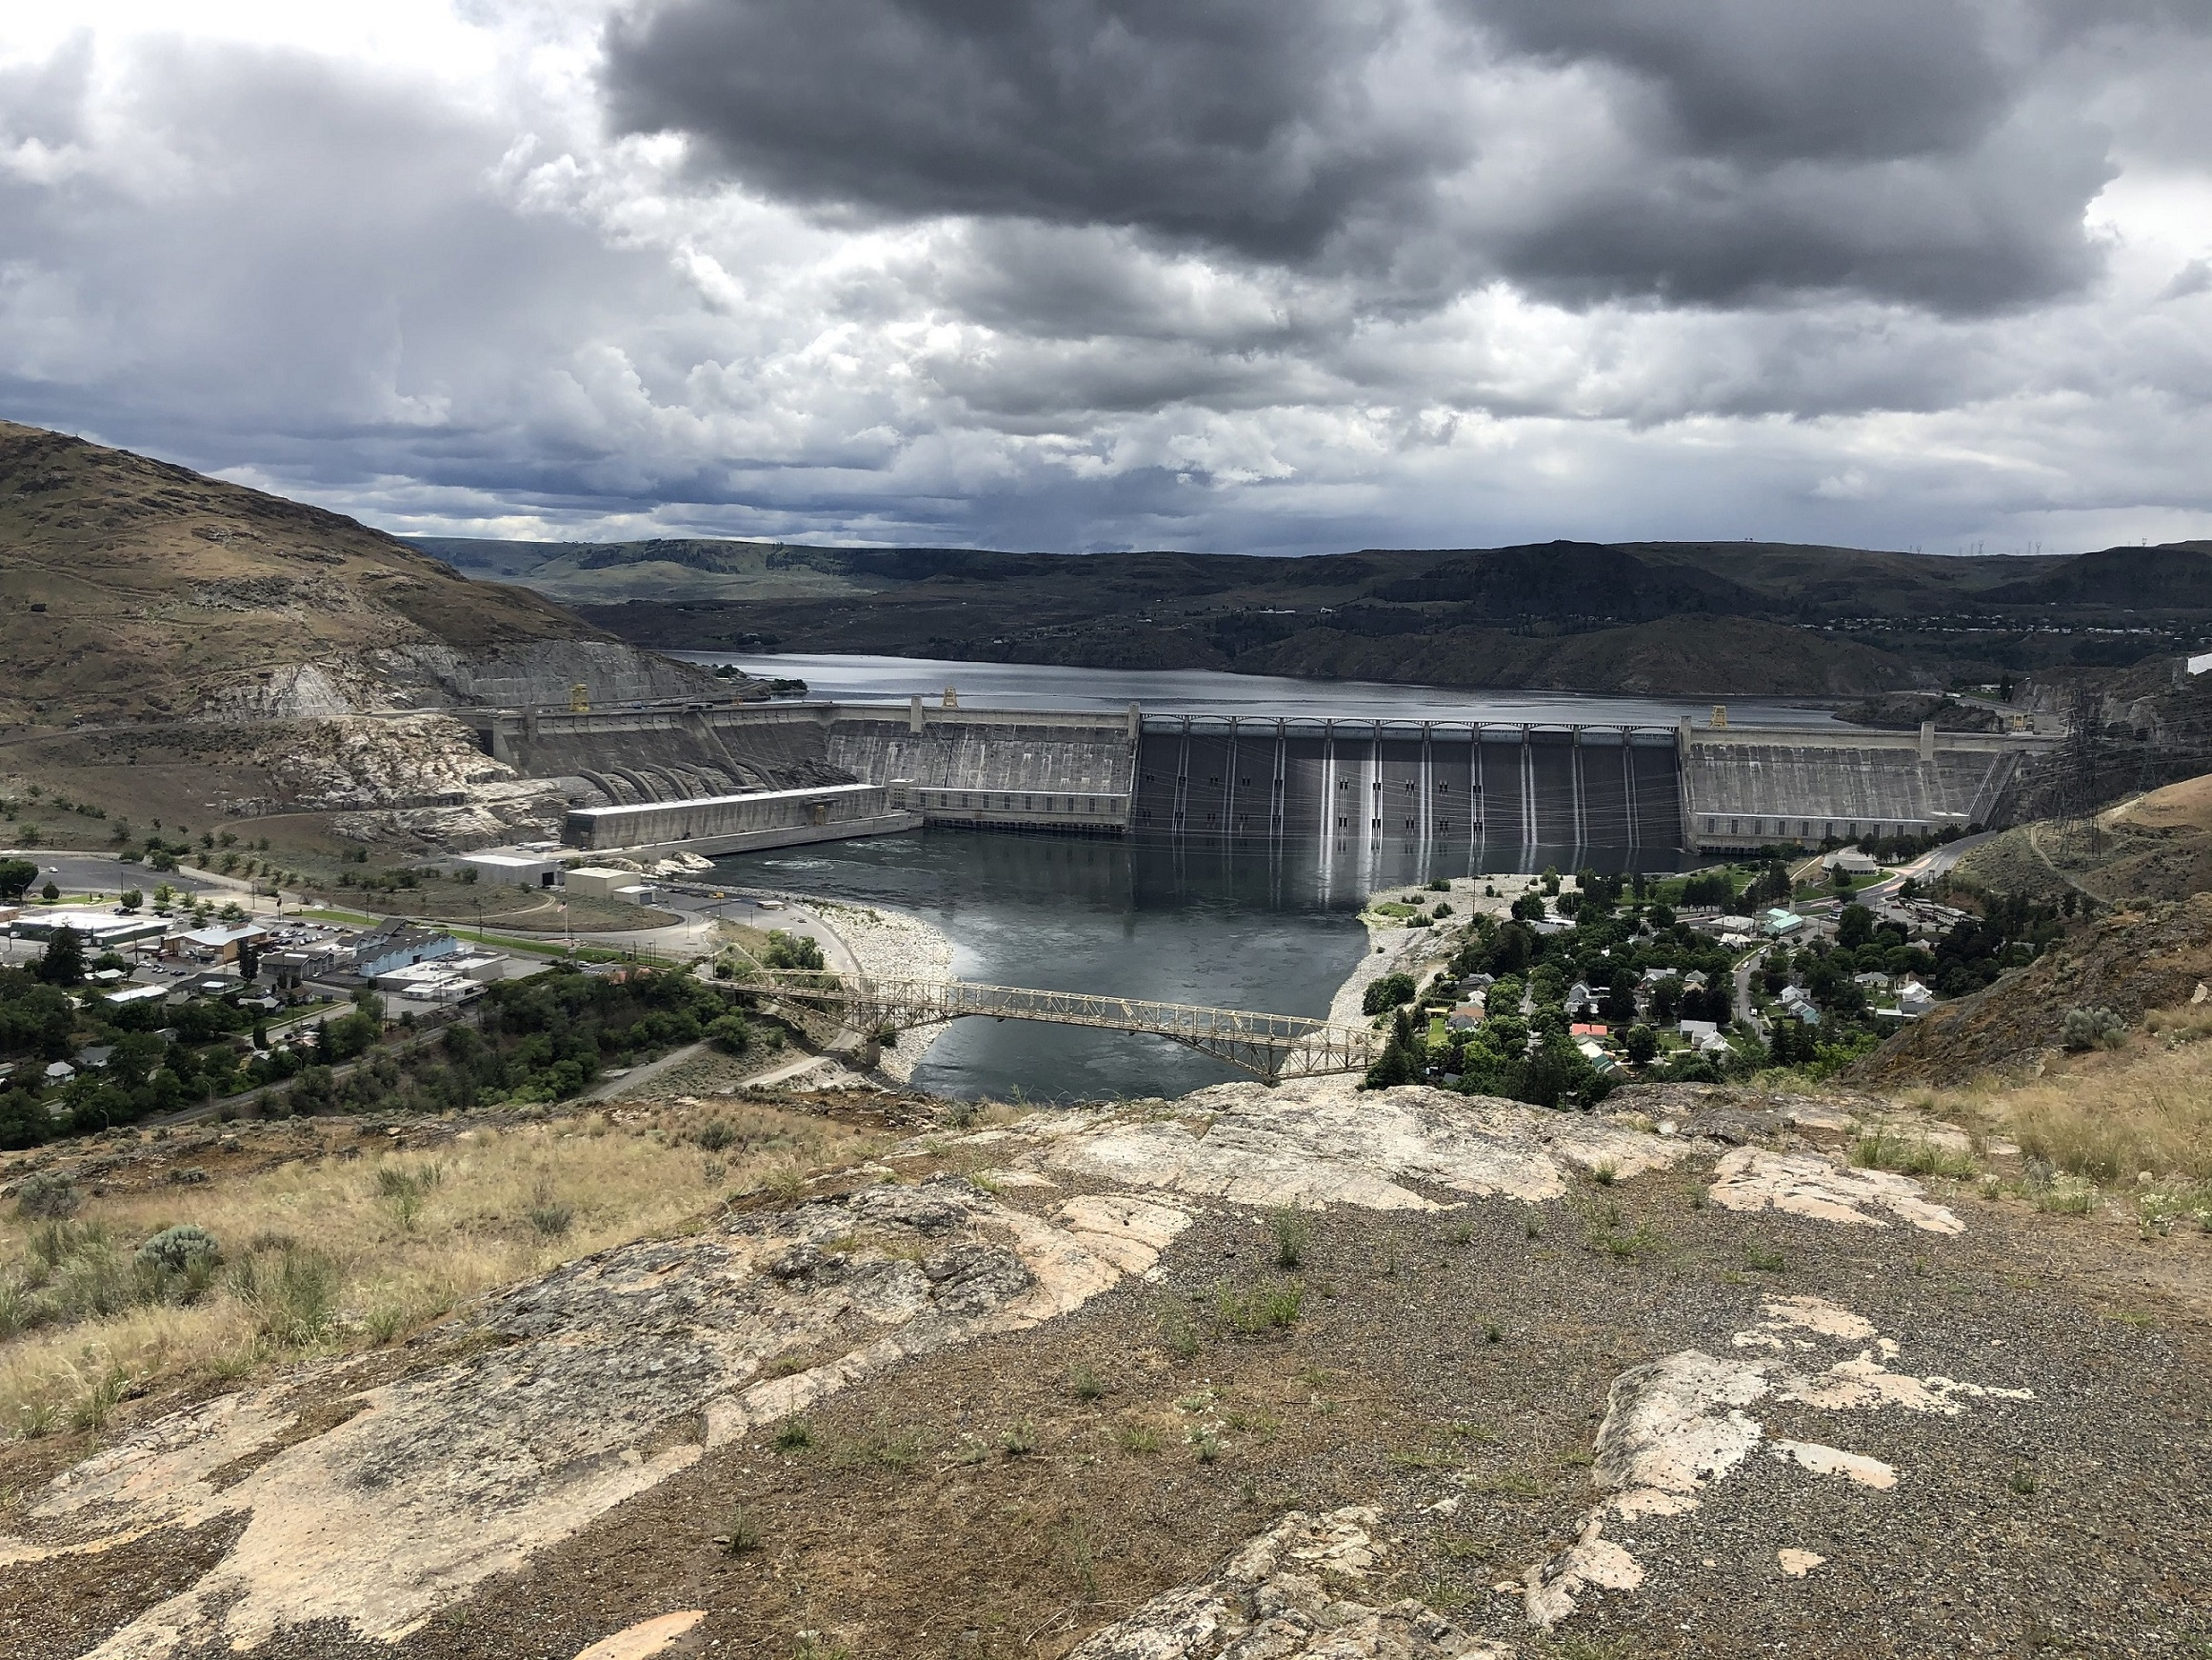 Our repairs are in service across the country, including at the Grand Coulee Dam.